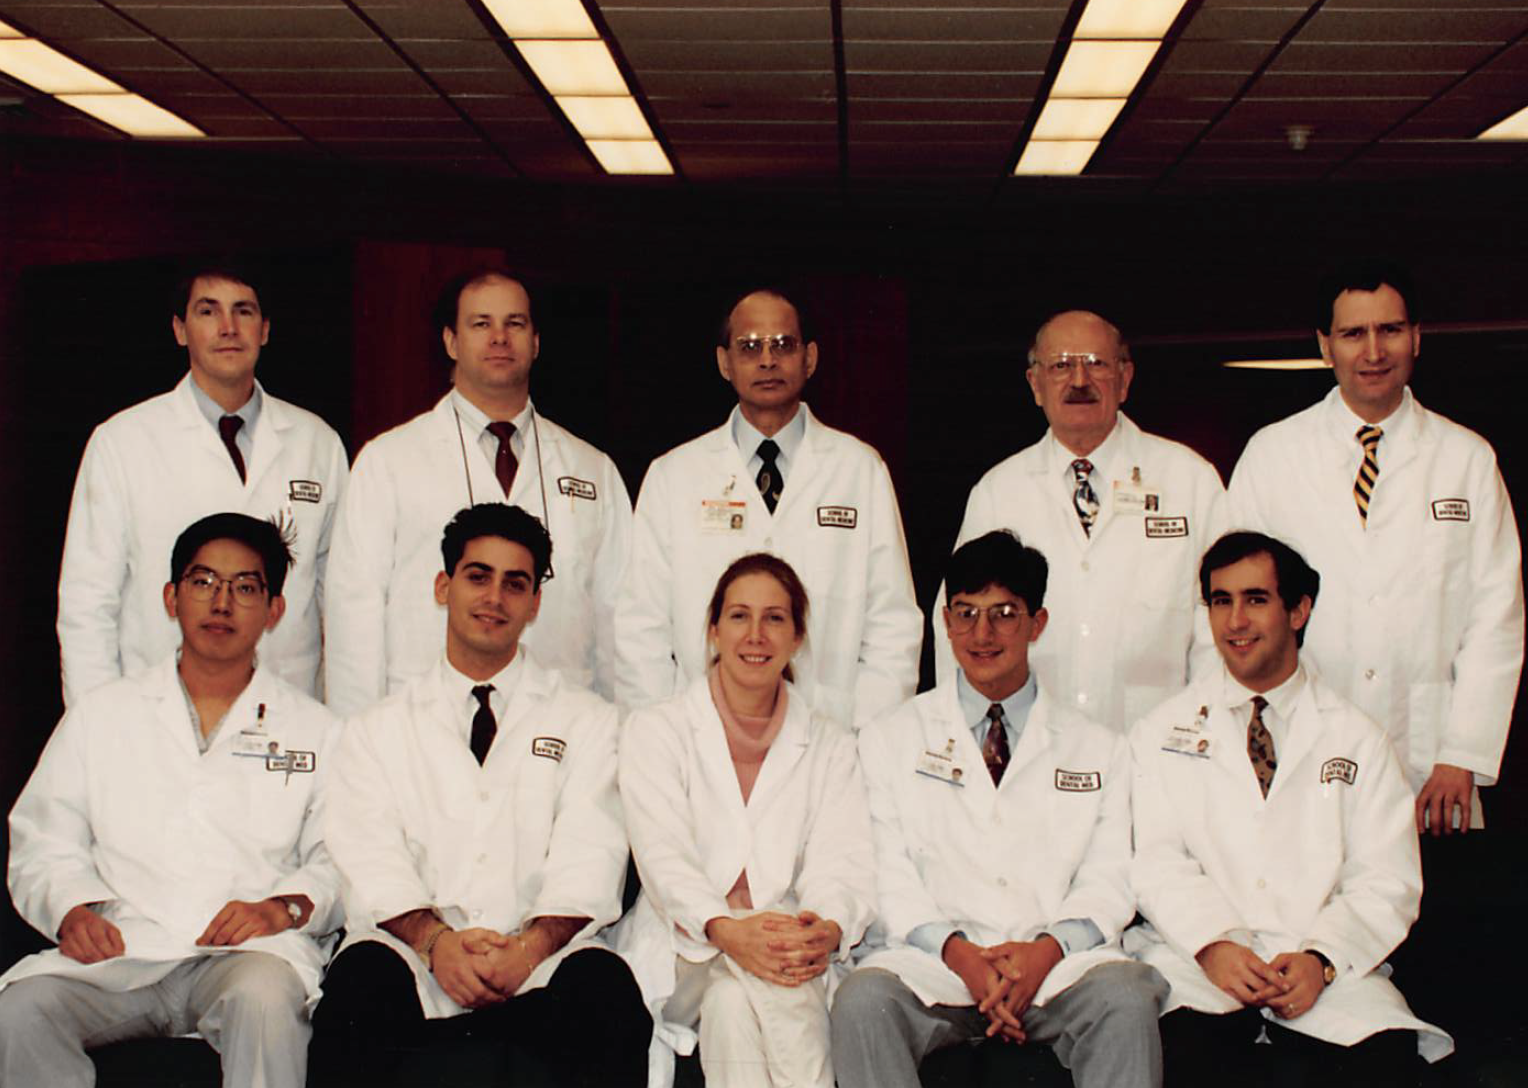 A group photo with one row of people standing and another row sitting in front. Everyone is wearing a white lab coat. In the photo are members of the original class of Stony Brook School of Dental Medicine's advanced education program in periodontics.